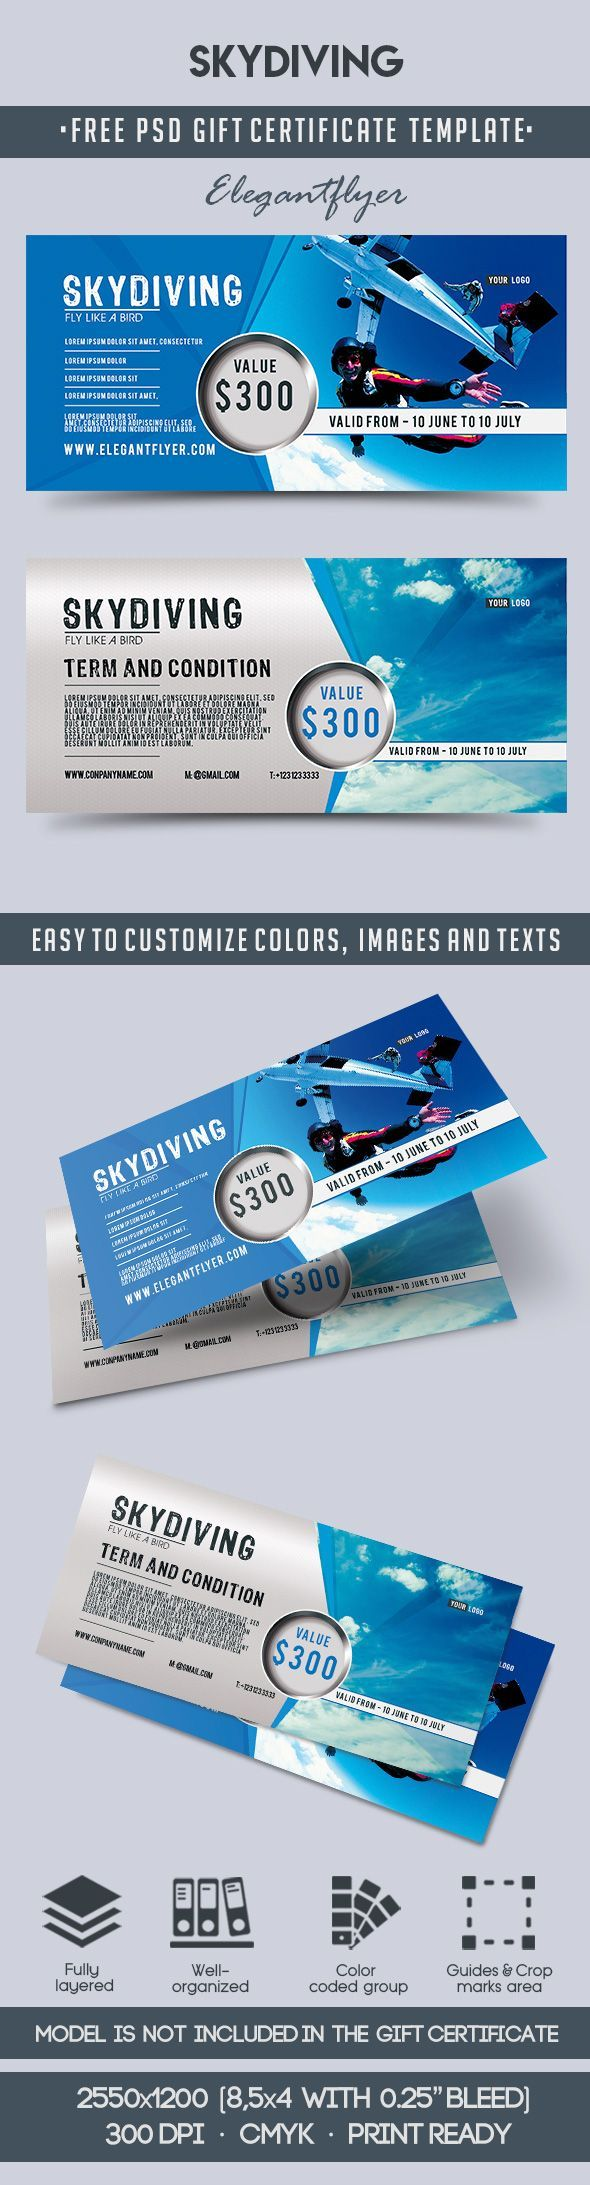 The 66 best free gift certificate templates images on pinterest skydiving free gift certificate psd template yelopaper Gallery